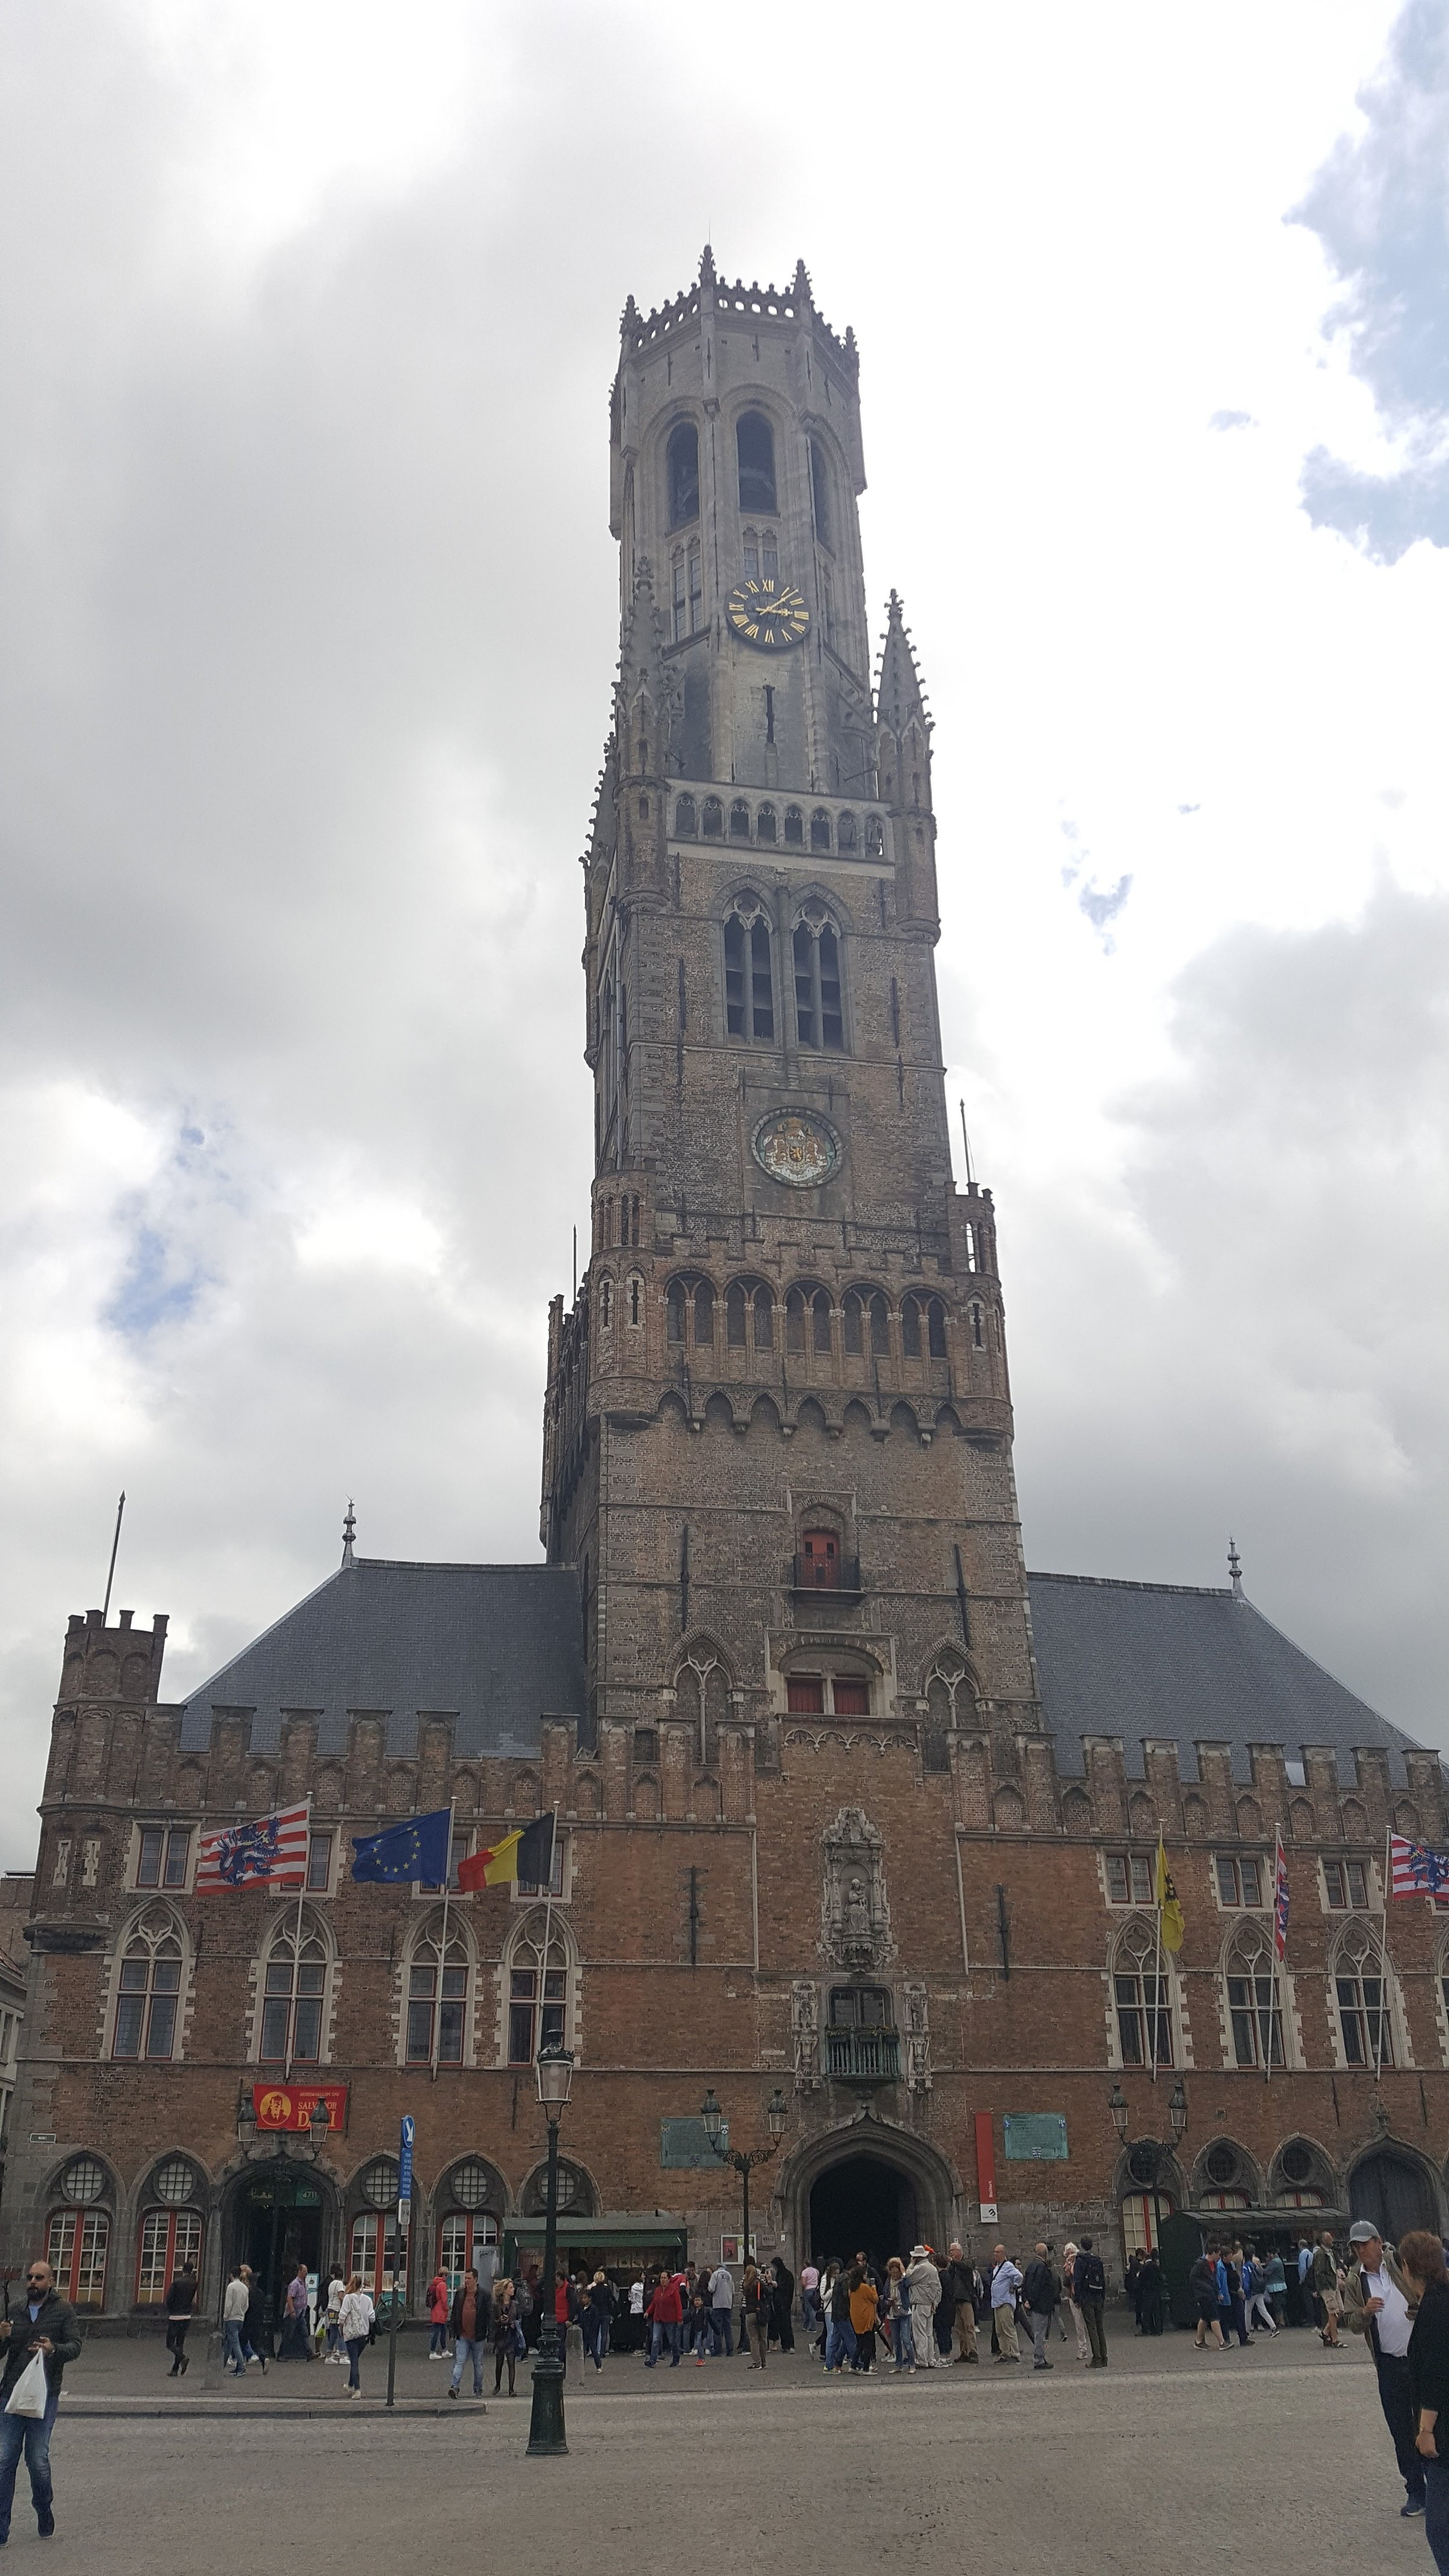 The Belfry & Halle: Take the 366 steps to the top of the tower for magnificent views of the square and further.